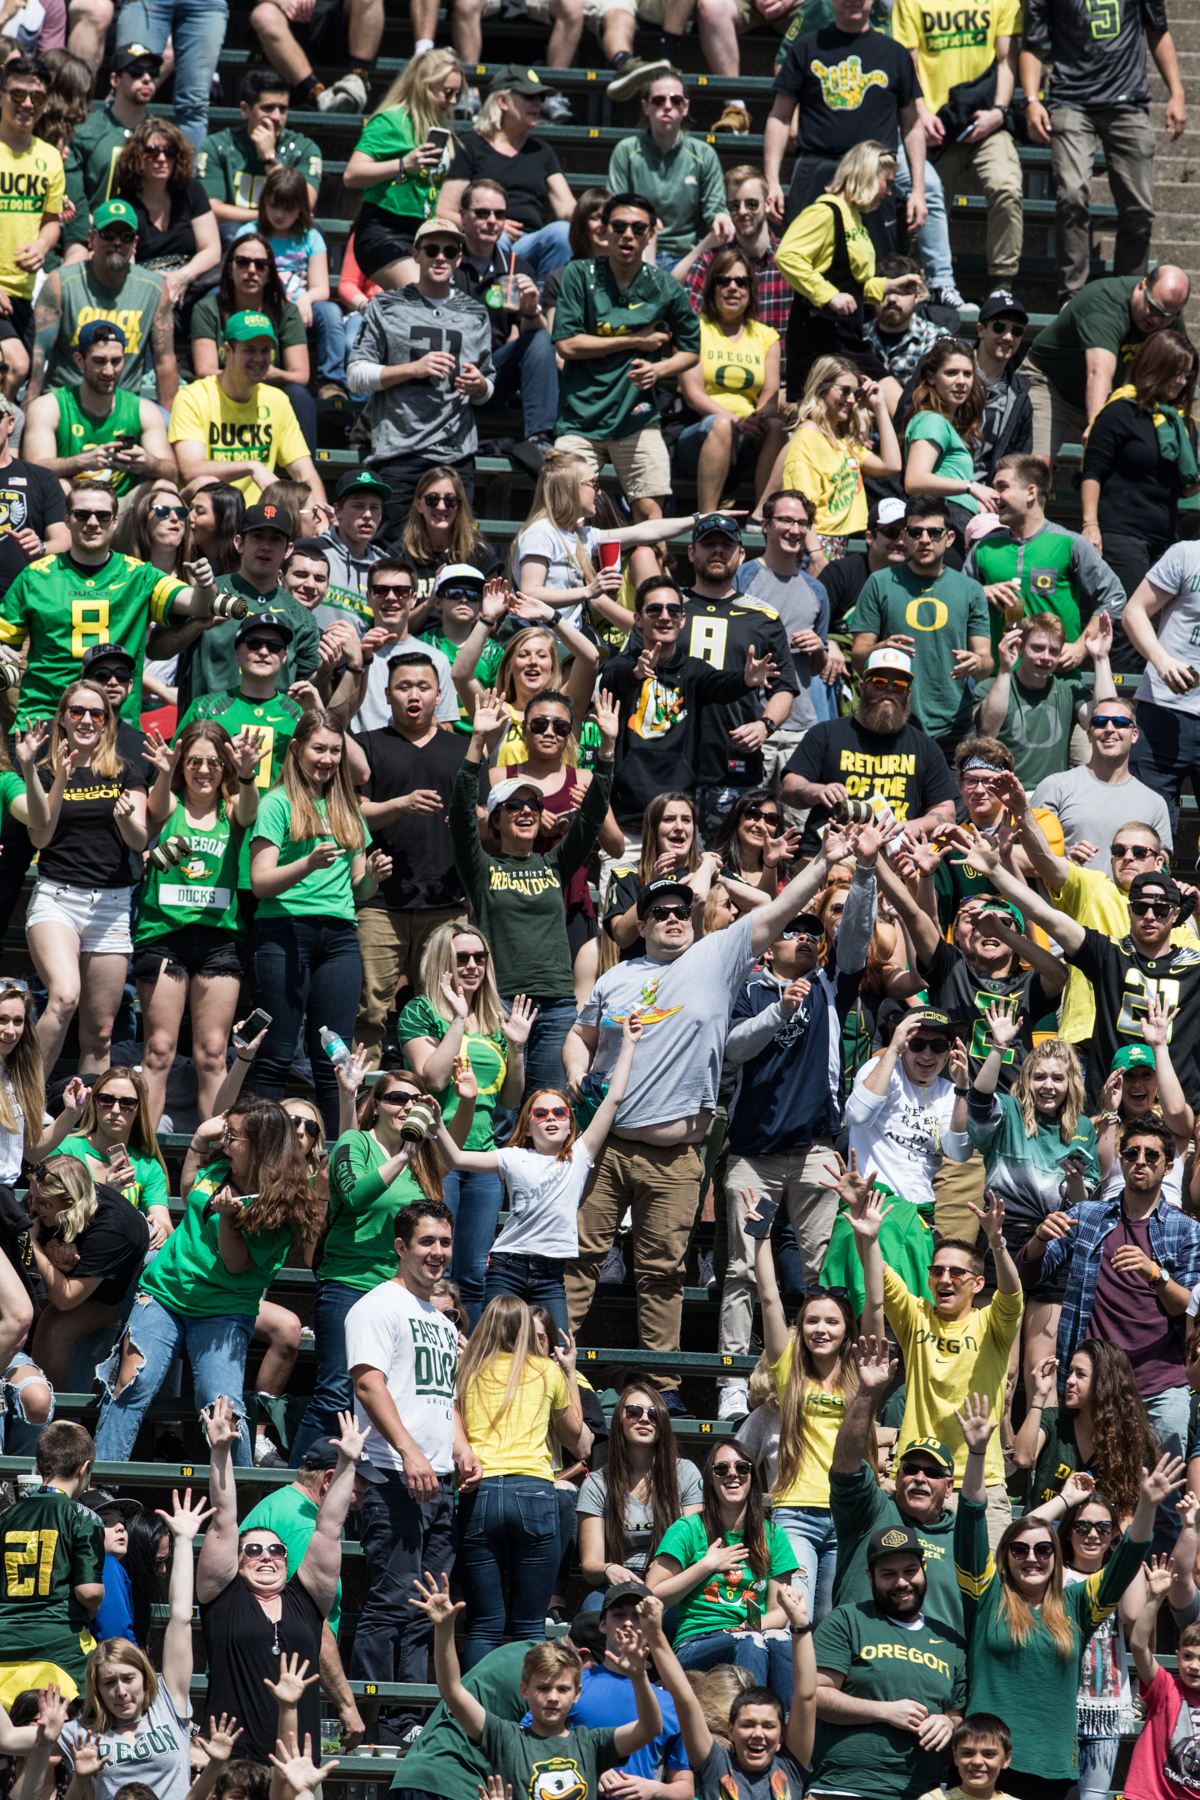 University of Oregon Ducks football fans gathered for the 2017 Spring Game at Autzen Stadium. The Spring Game served as the first exhibition of Coach Willie Taggart's newly assembled coaching staff. Cost of admission was three cans of non-perishable food to benefit Food for Lane County. Photo by Ausitn Hicks, Oregon News Lab